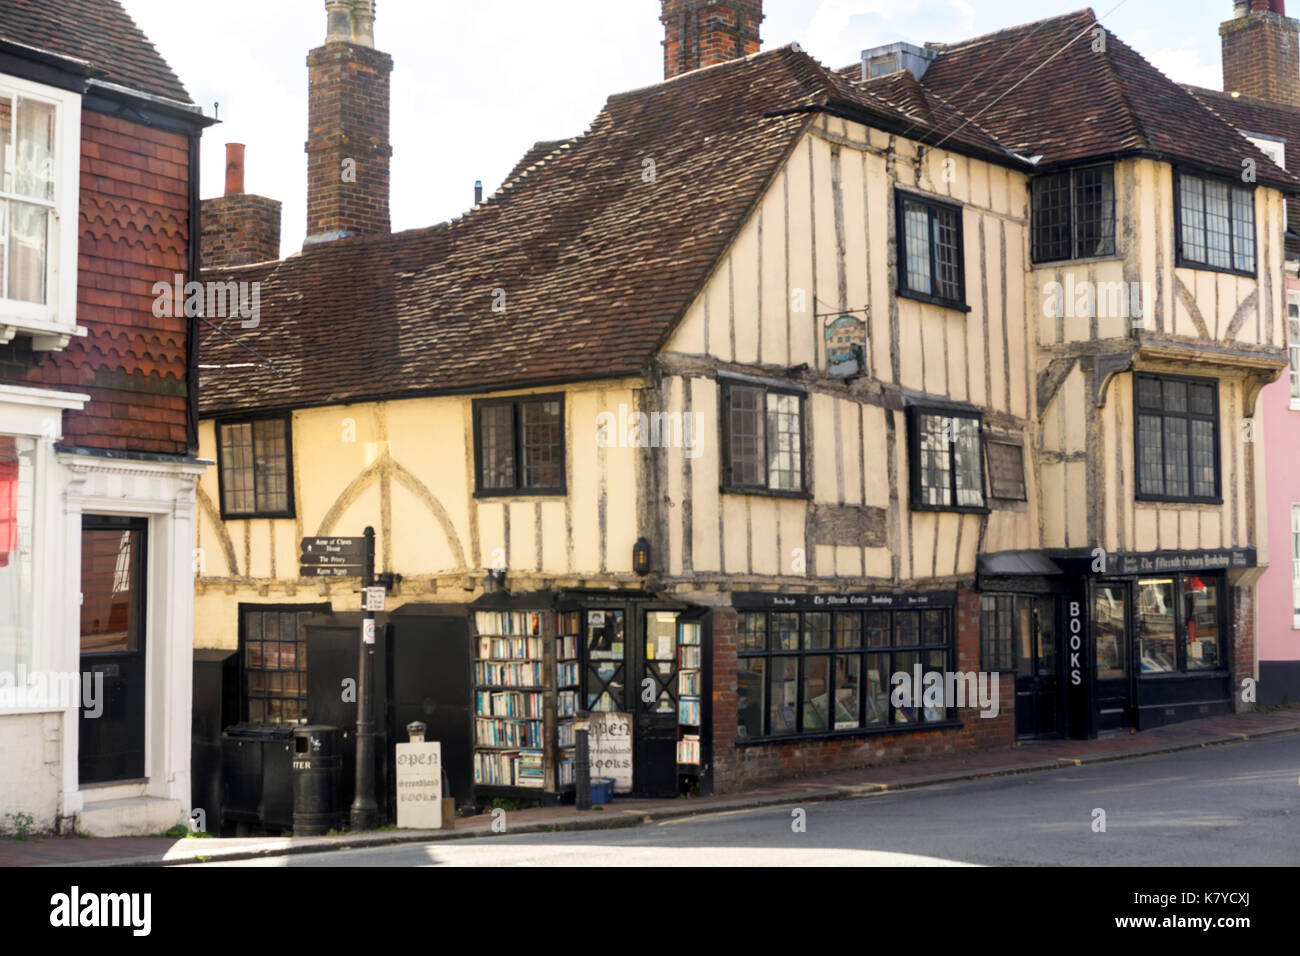 The Fifteenth Century Bookshop, on the corner of High Street and Keere Street in Lewes Sussex England - Stock Image